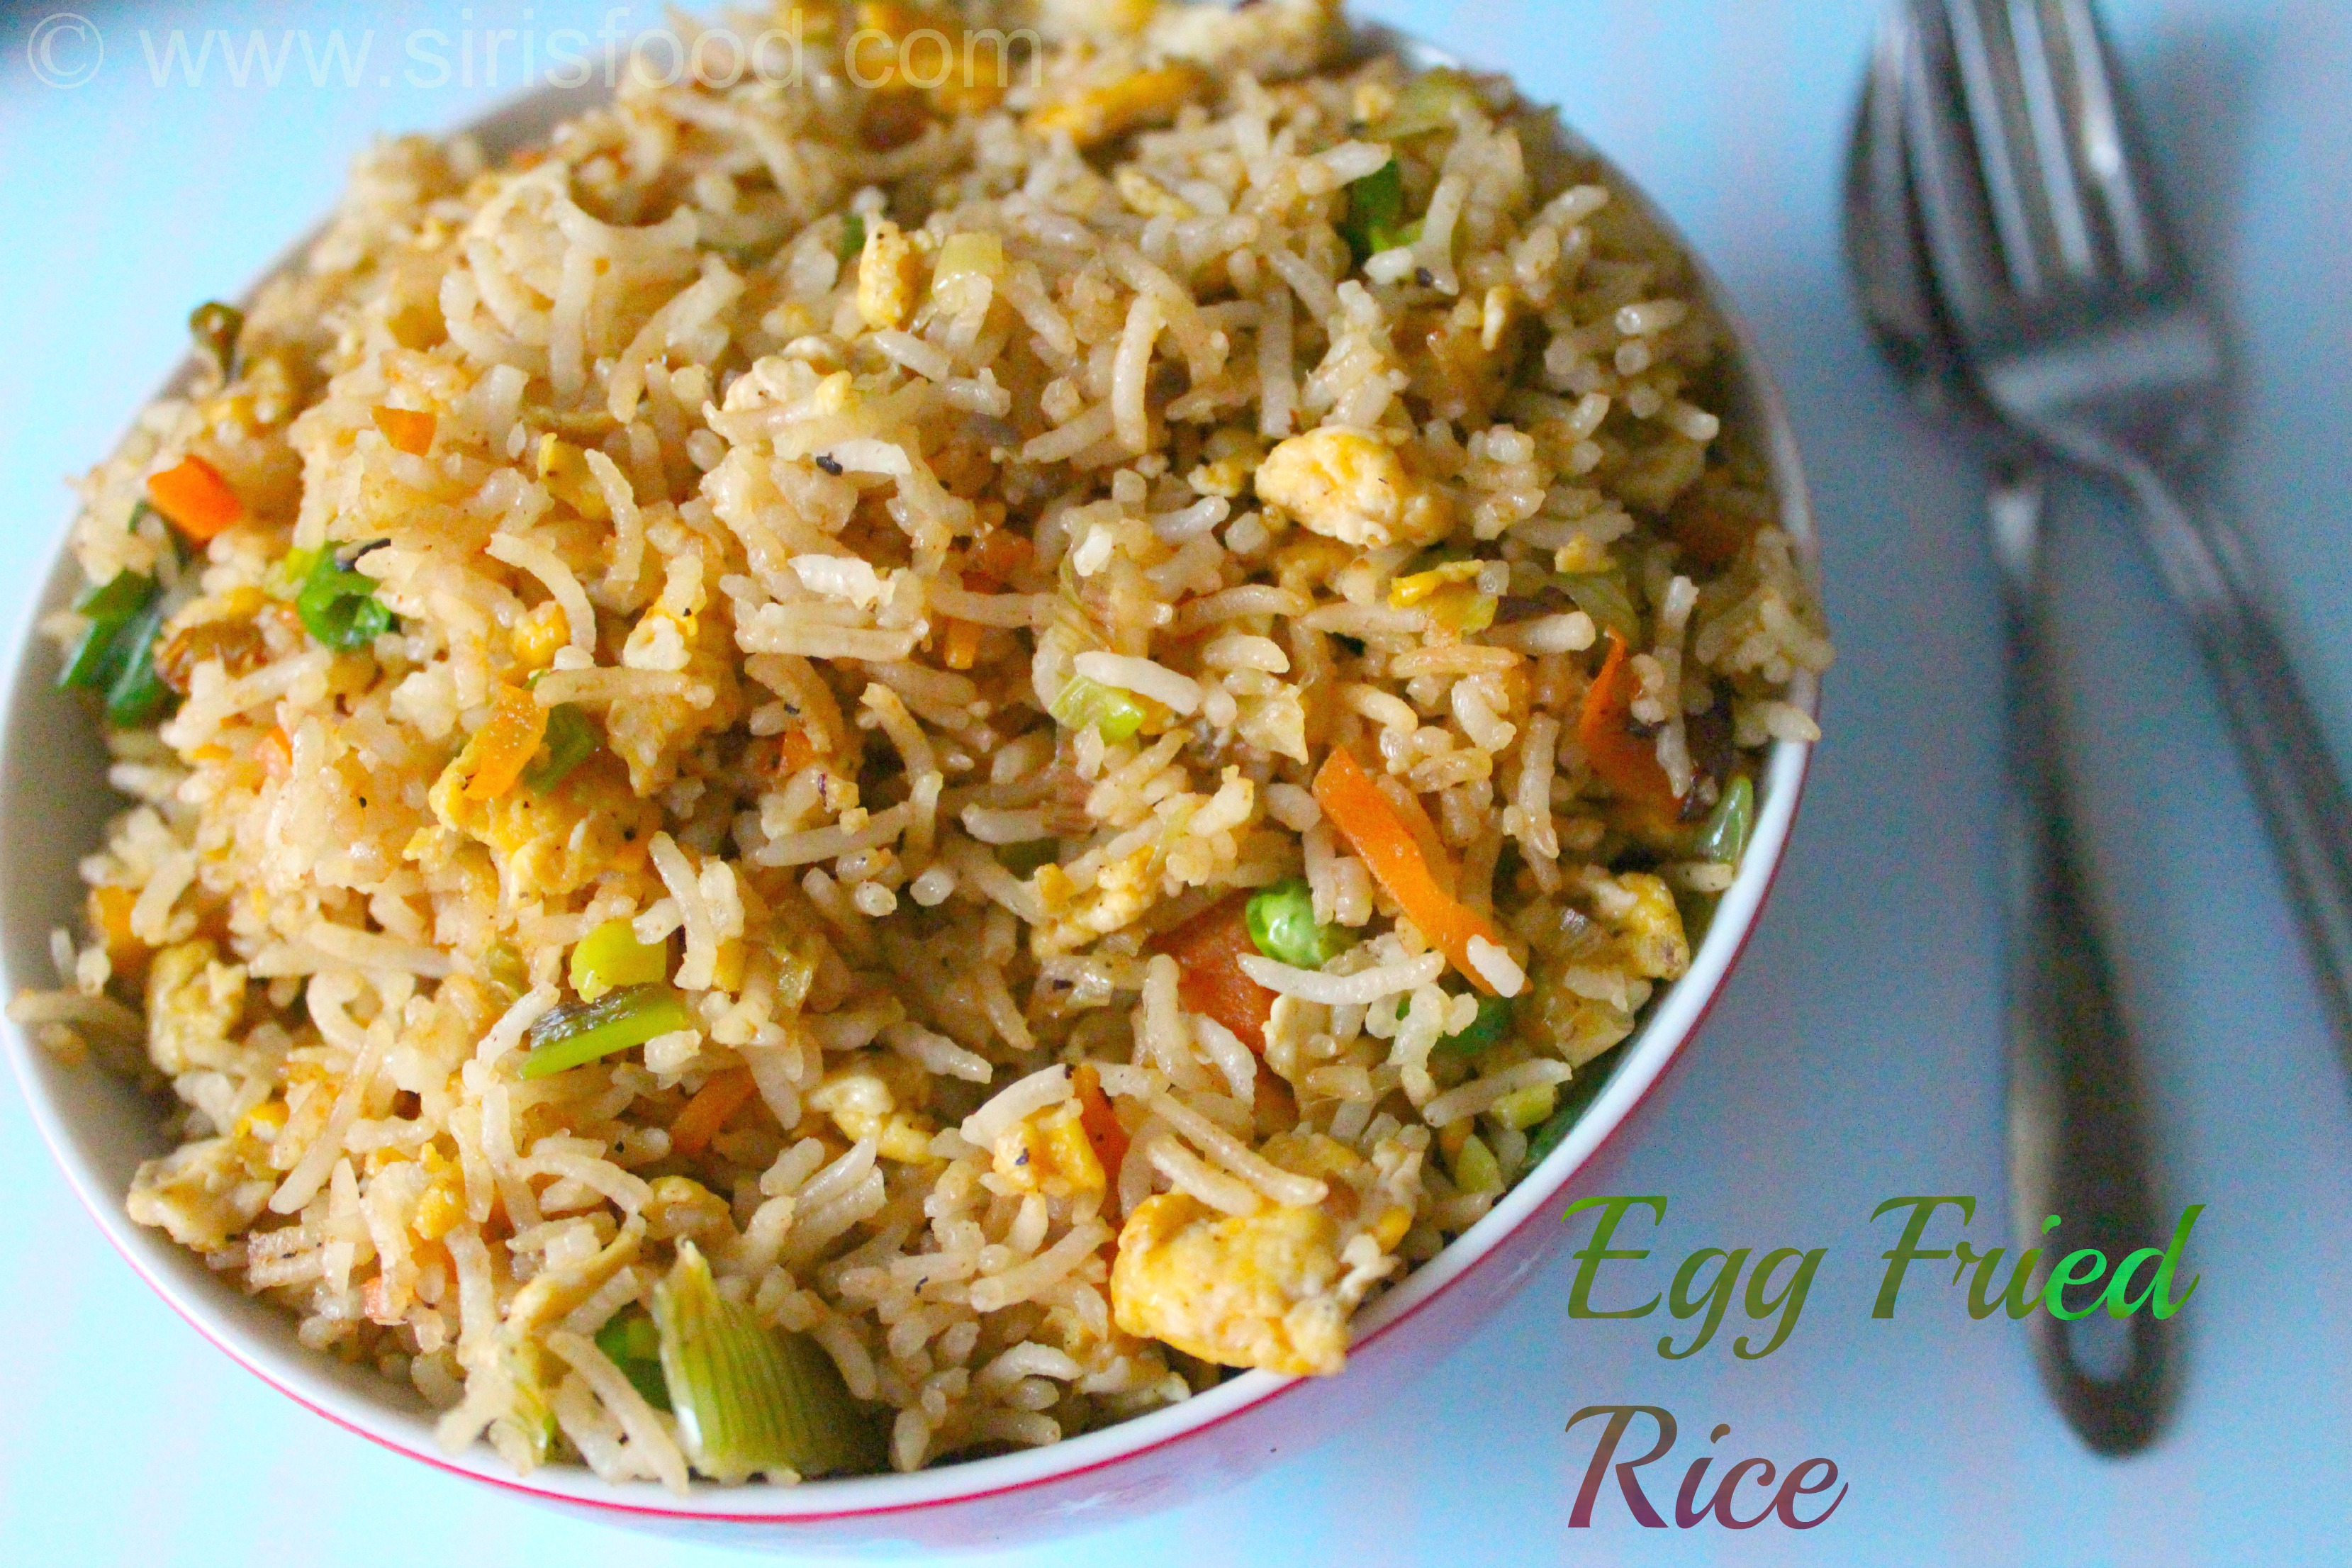 Indo chinese egg fried rice recipe egg fried rice a true indo hinese style ccuart Image collections